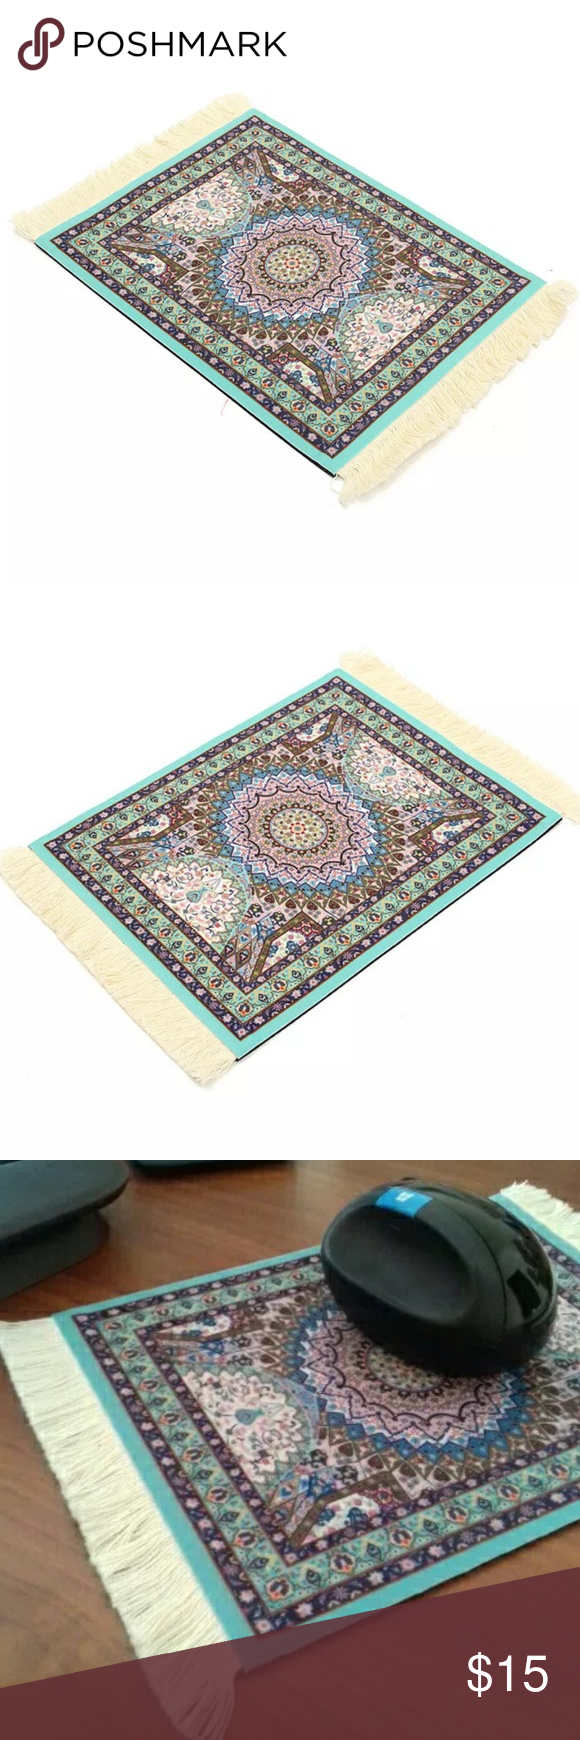 Mouse Pad Persion Rug Mouse Pad Boutique Rugs Woven Mouse Pad